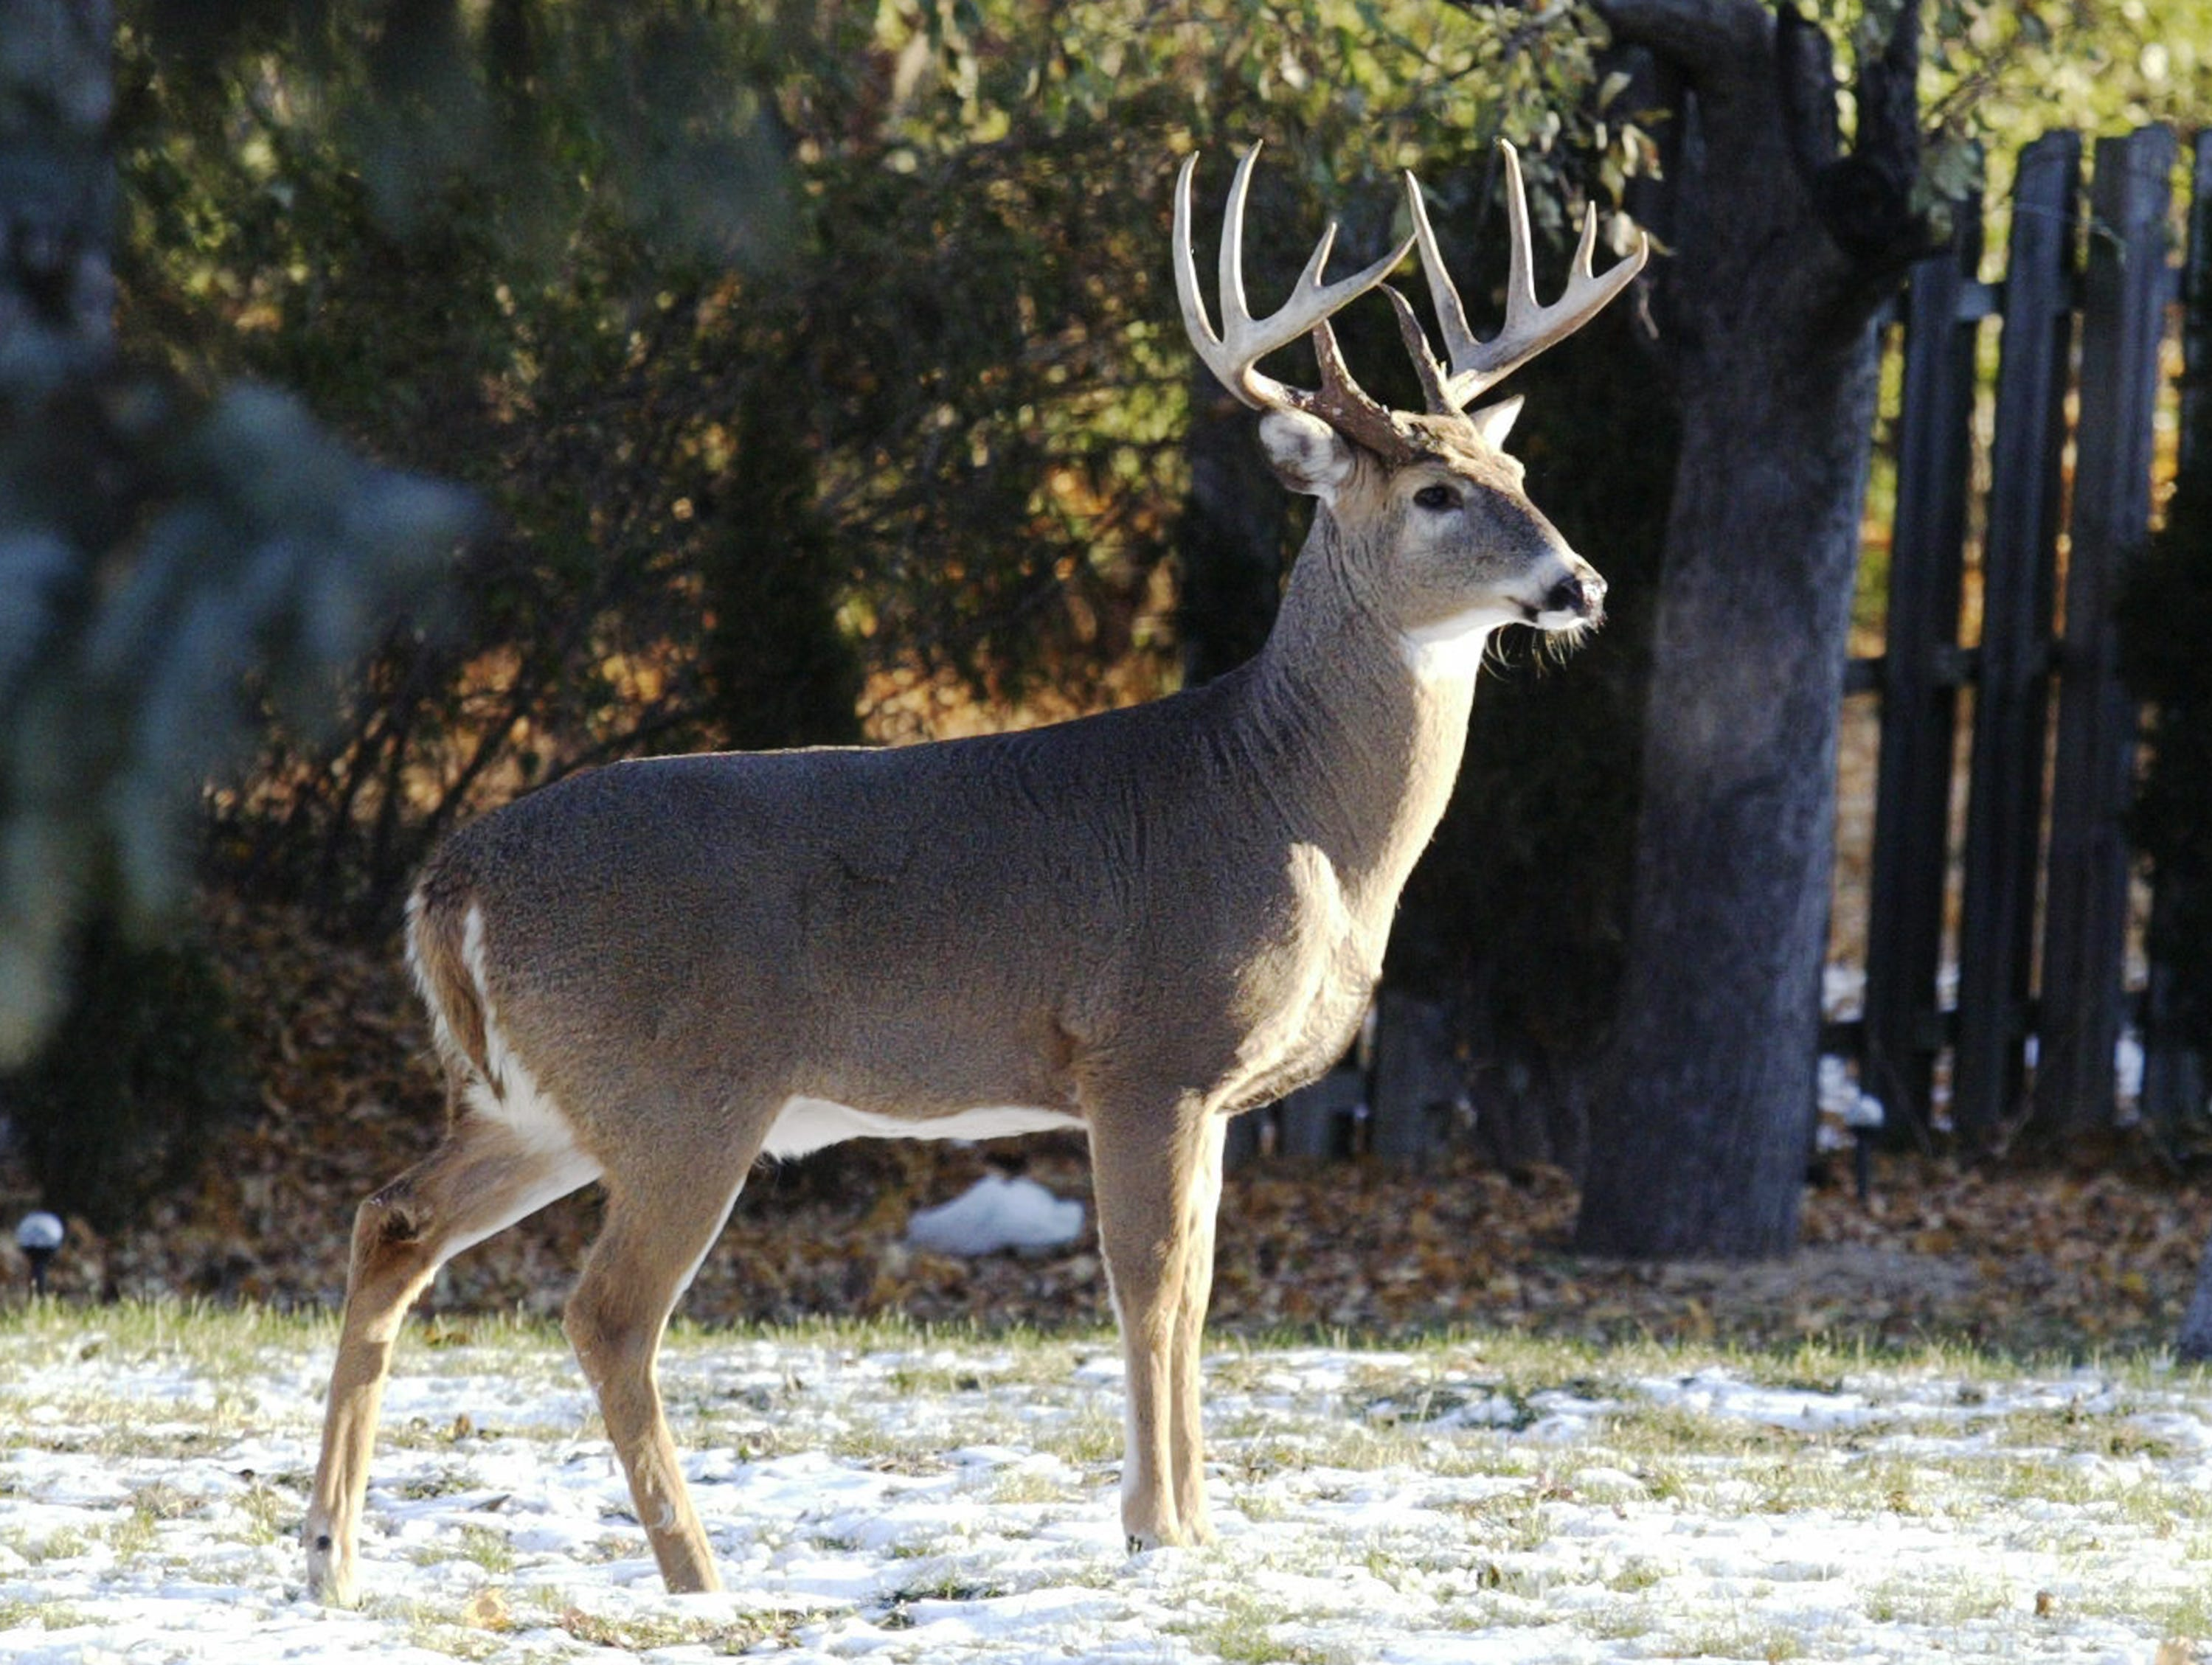 A buck stands in the backyard of a City of Sheboygan home in the 1000 block of N. 23rd Street, Wednesday November 14, 2018, in Sheboygan, Wis.